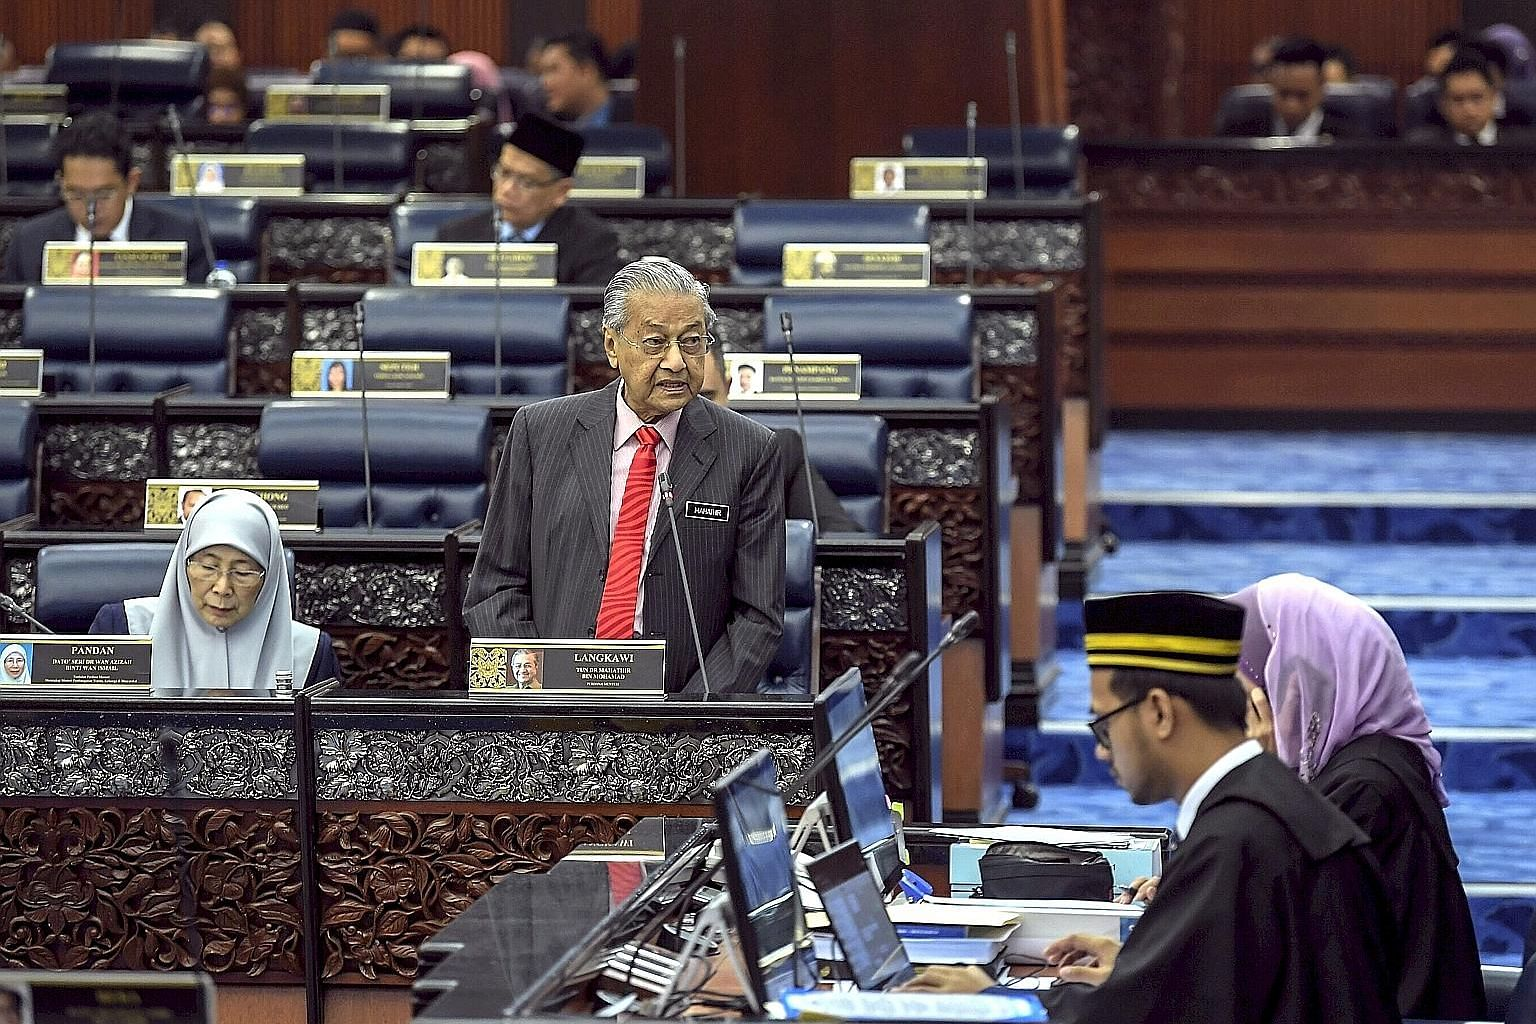 Malaysian Prime Minister Mahathir Mohamad during a question-and-answer session in Parliament yesterday. Lowering the voting age to 18 was one of Pakatan Harapan's key pledges in the run-up to last year's general election. The move will bring Malaysia